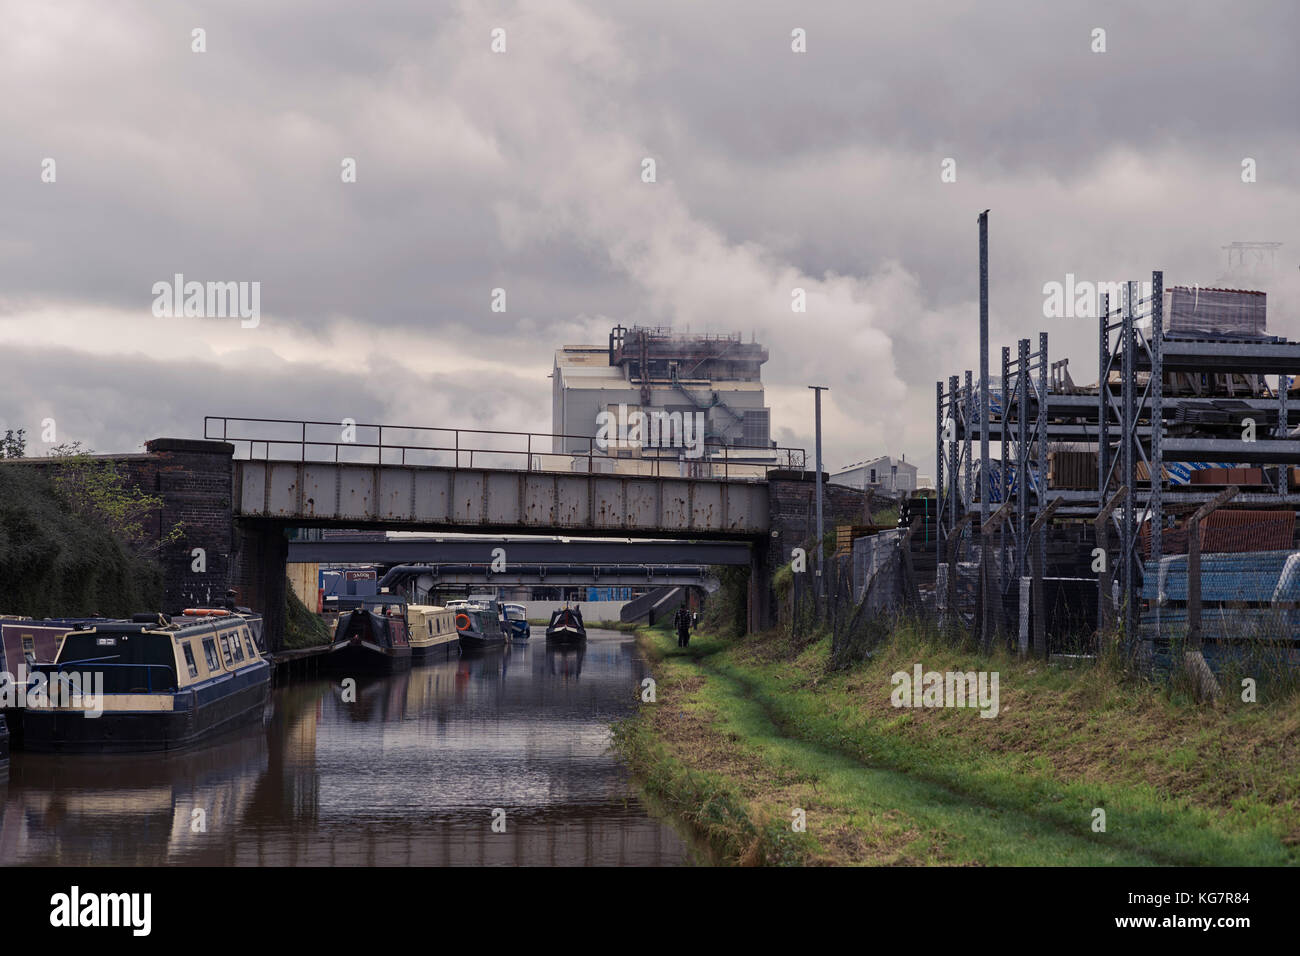 Entering into the chemical works on the Trent and Mersey canal - Stock Image